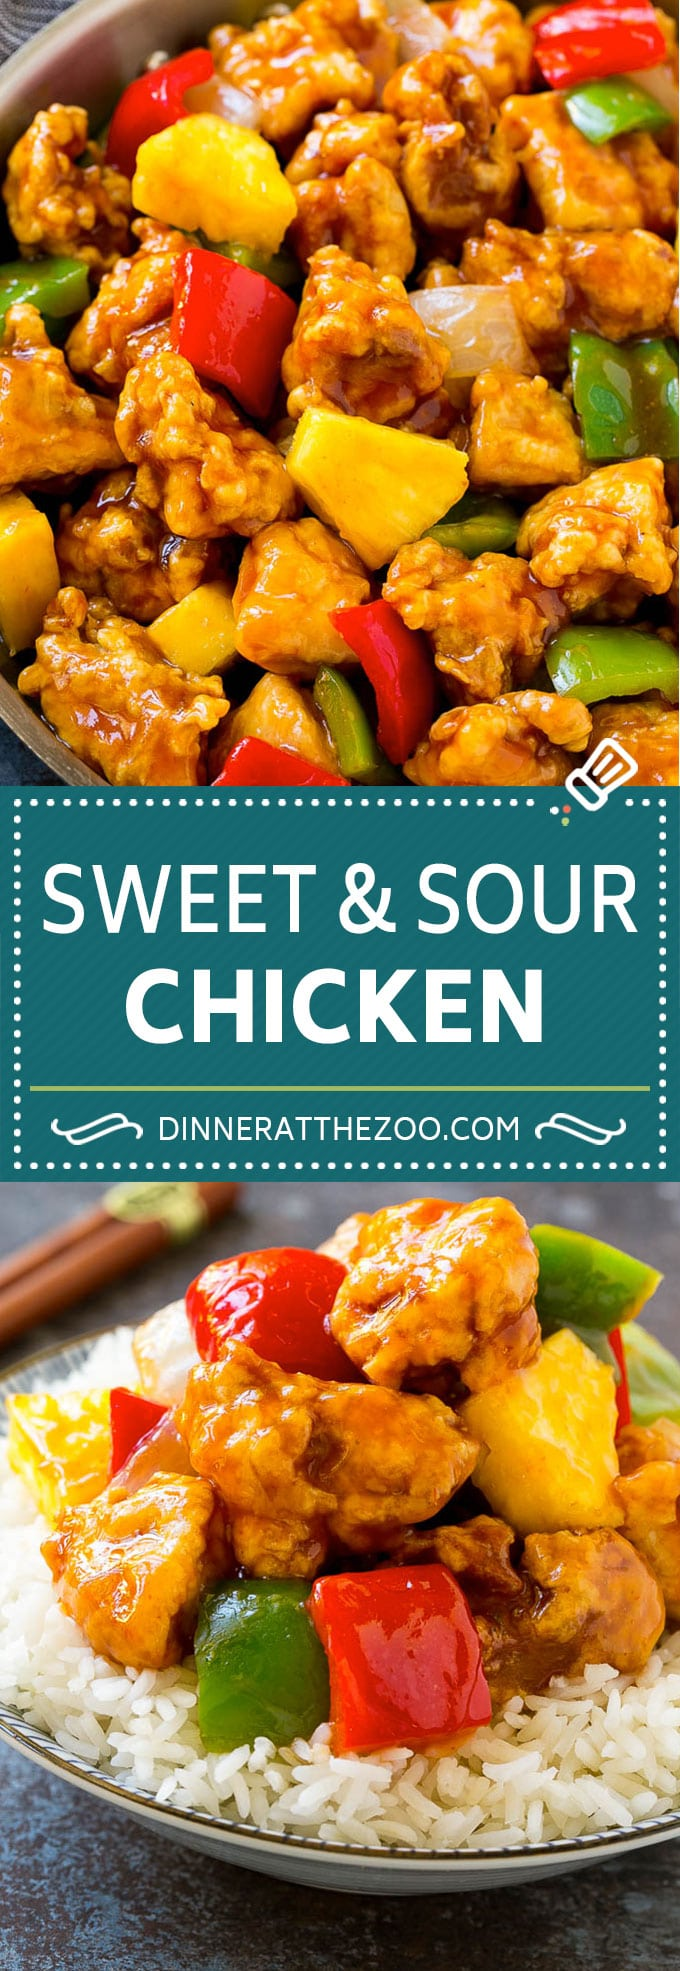 Sweet and Sour Chicken Recipe | Chinese Food Copycat Recipe | Chicken with Pineapple #chicken #chinesefood #pineapple #stirfry #takeout #dinner #dinneratthezoo